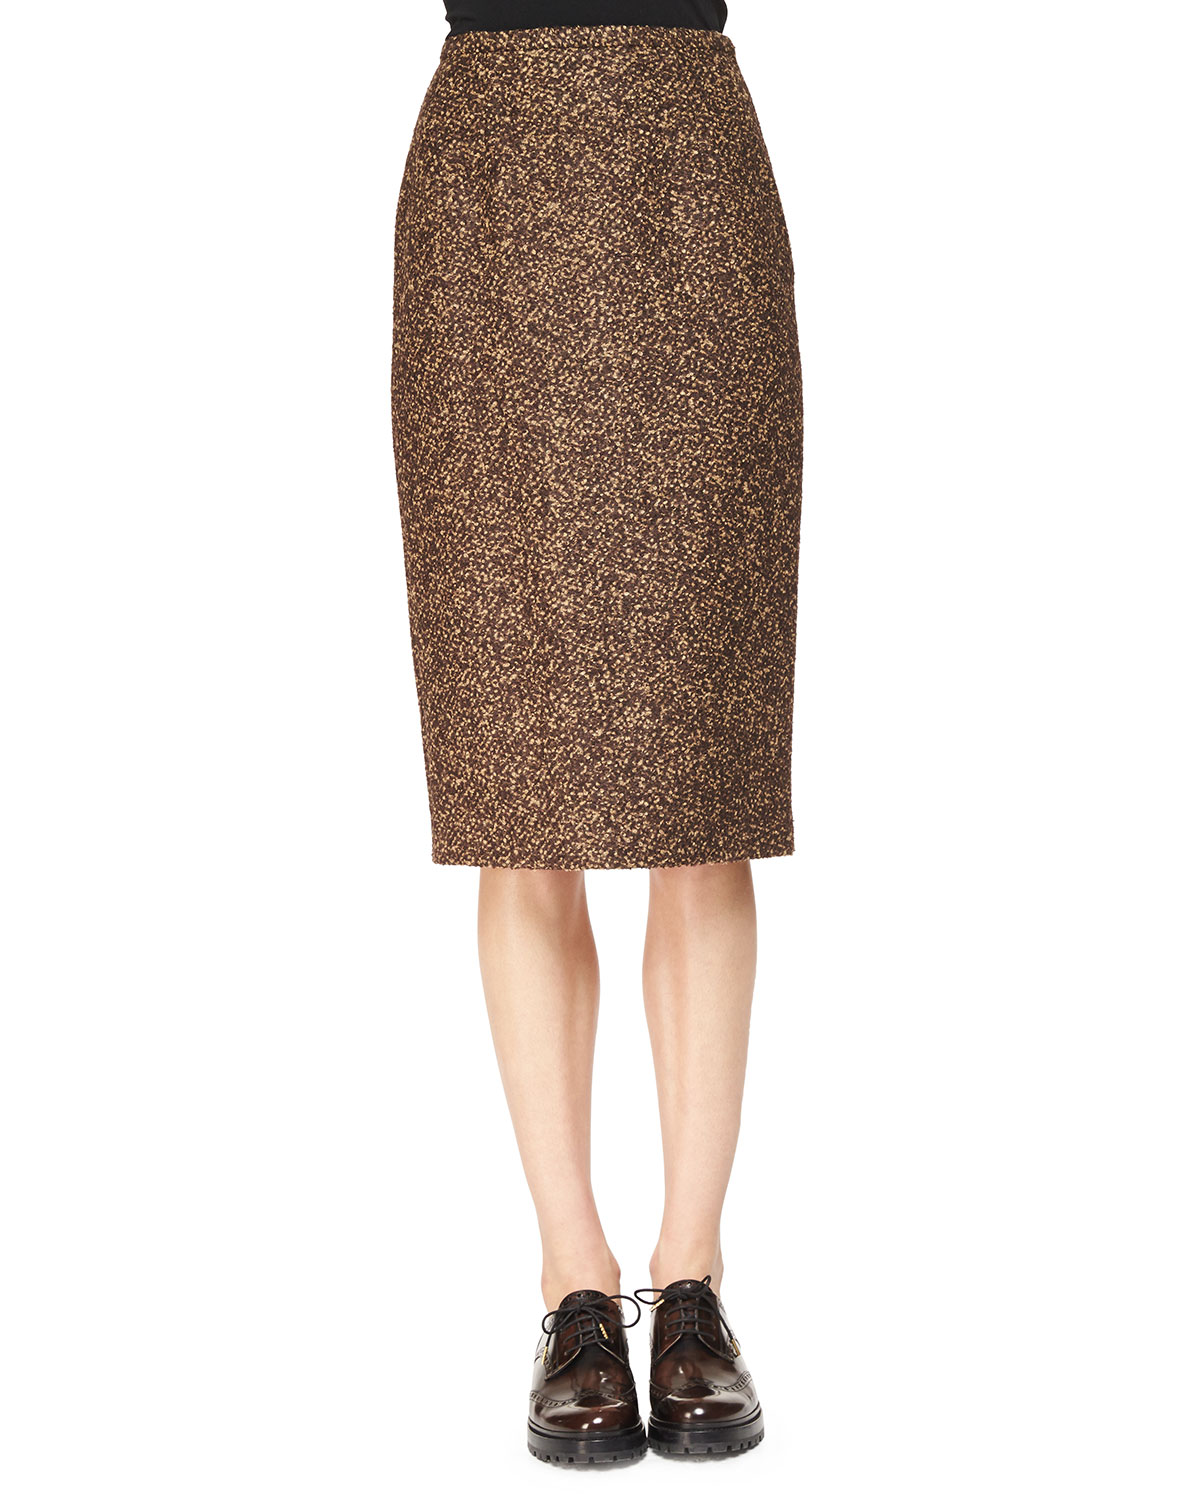 SLIM TWEED PENCIL SKIRT